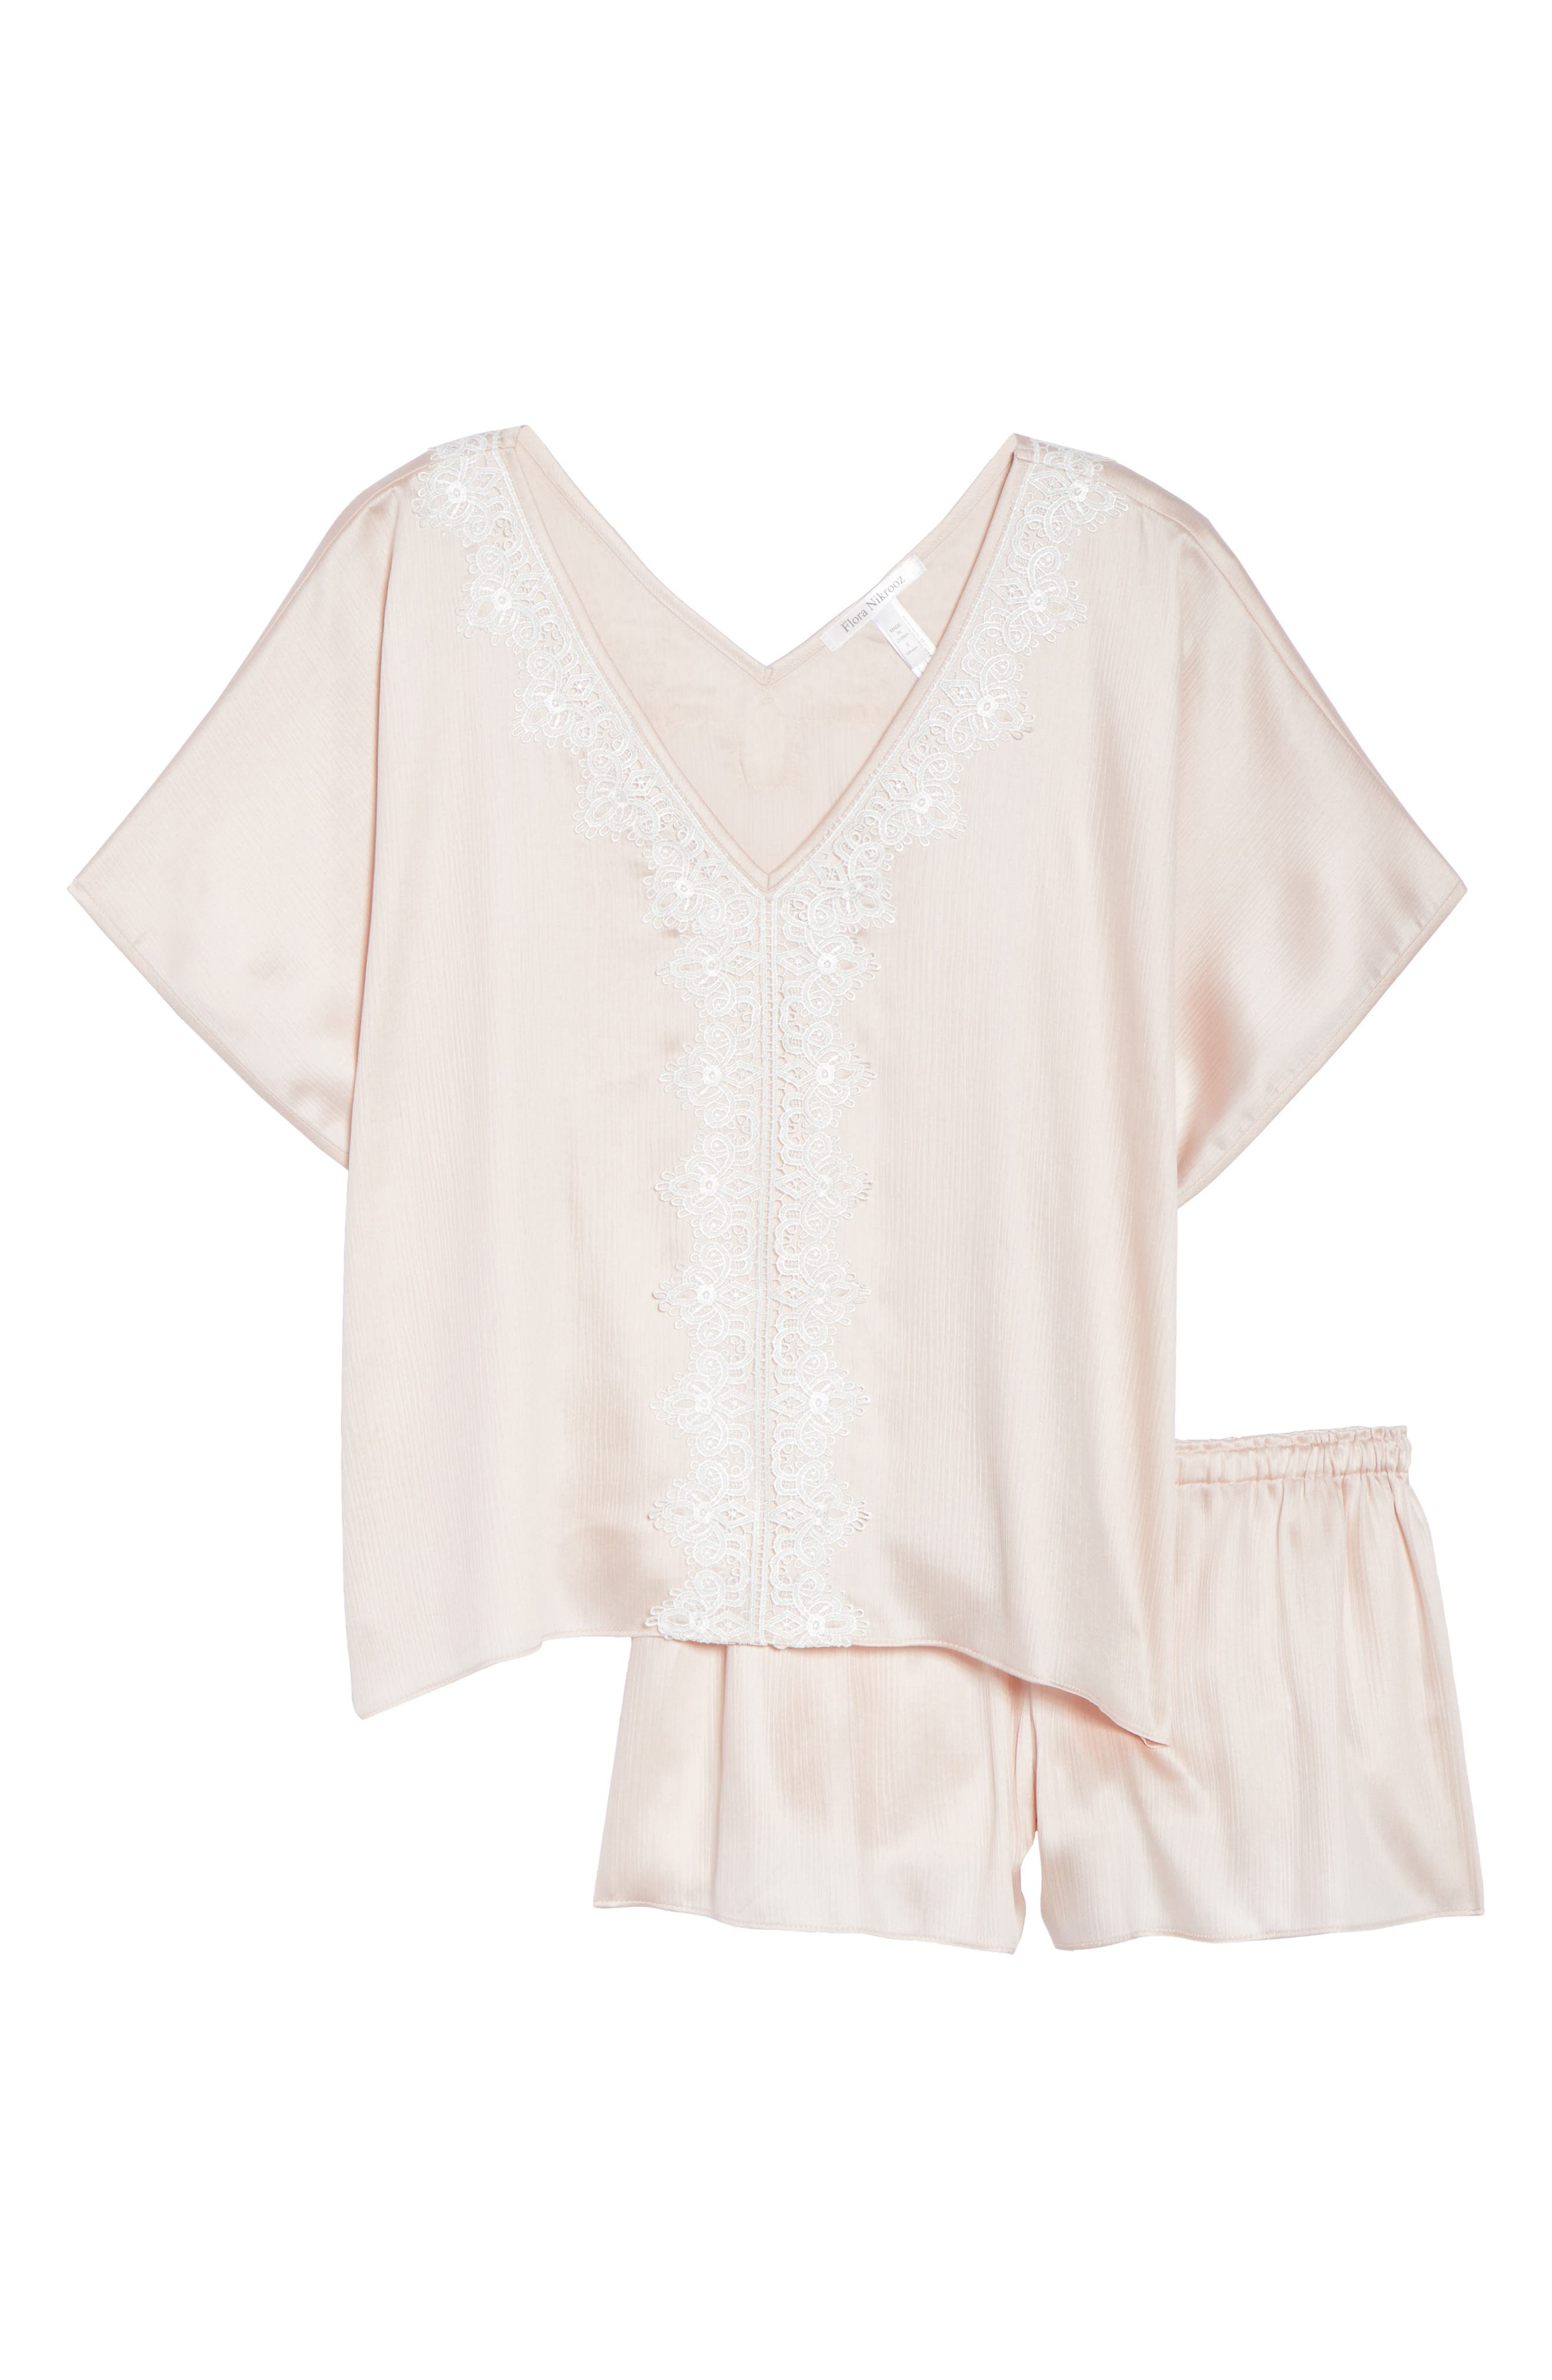 Mira Satin Short Pajamas,                             Alternate thumbnail 6, color,                             650